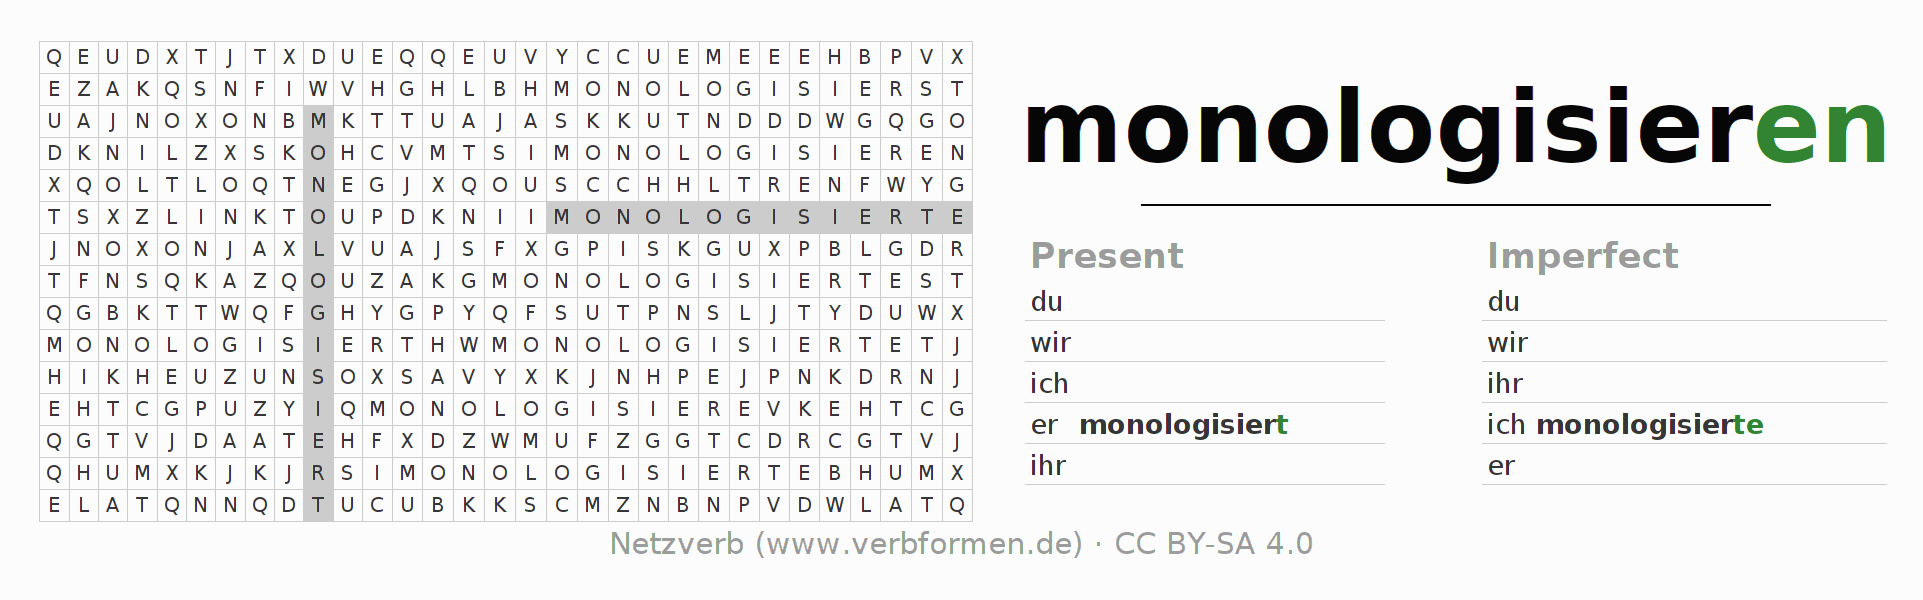 Word search puzzle for the conjugation of the verb monologisieren